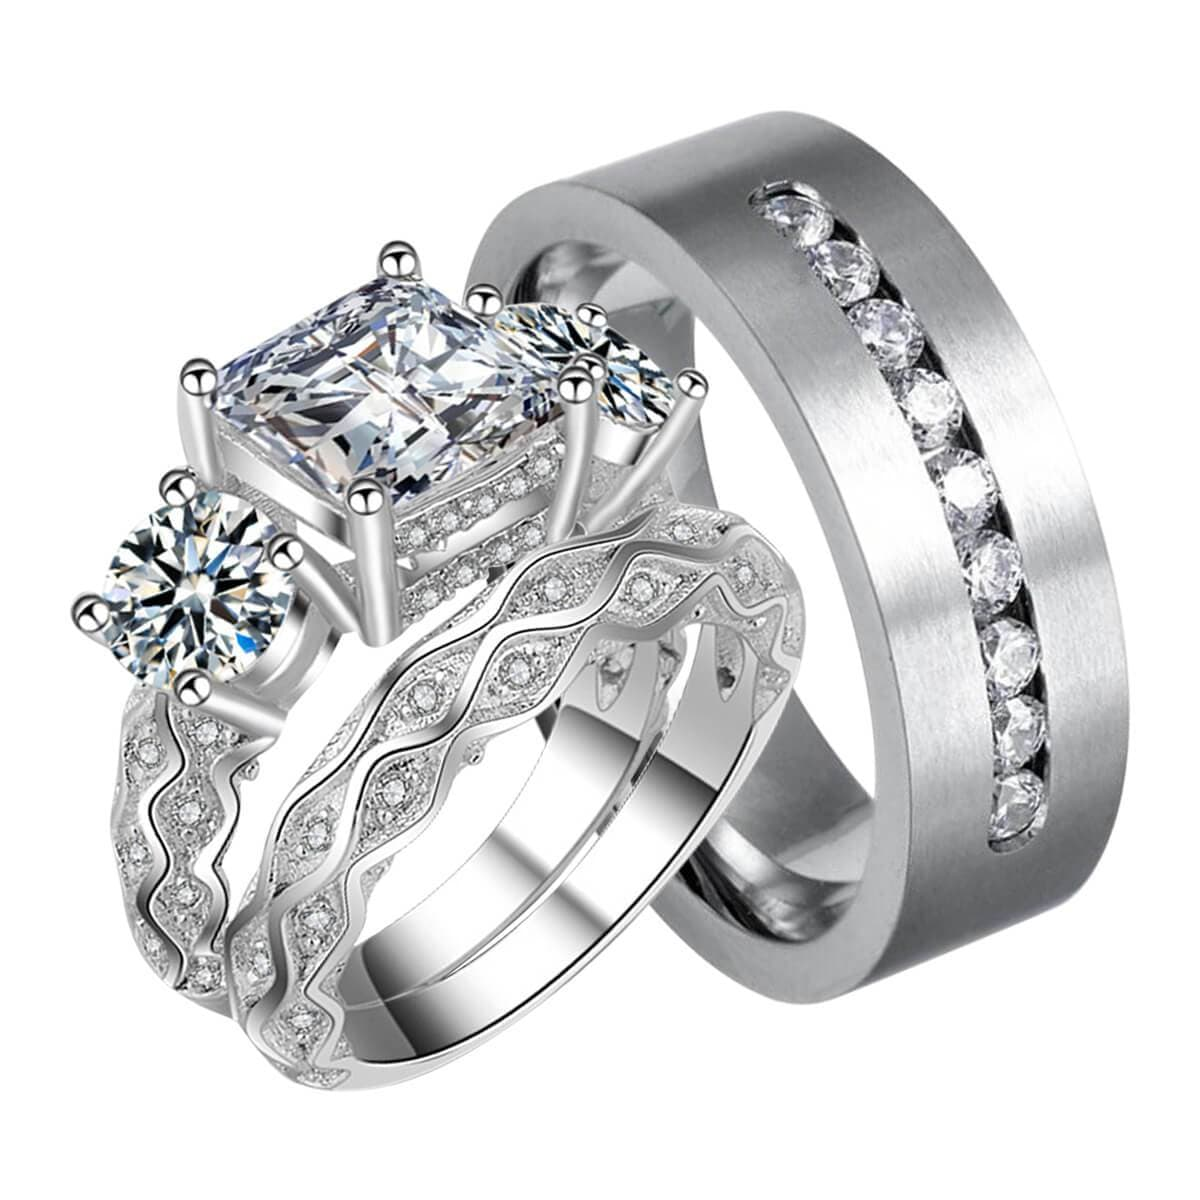 Wedding Rings Matching Set For Men Women Stainless Steel Plated Silver AAA Crystal